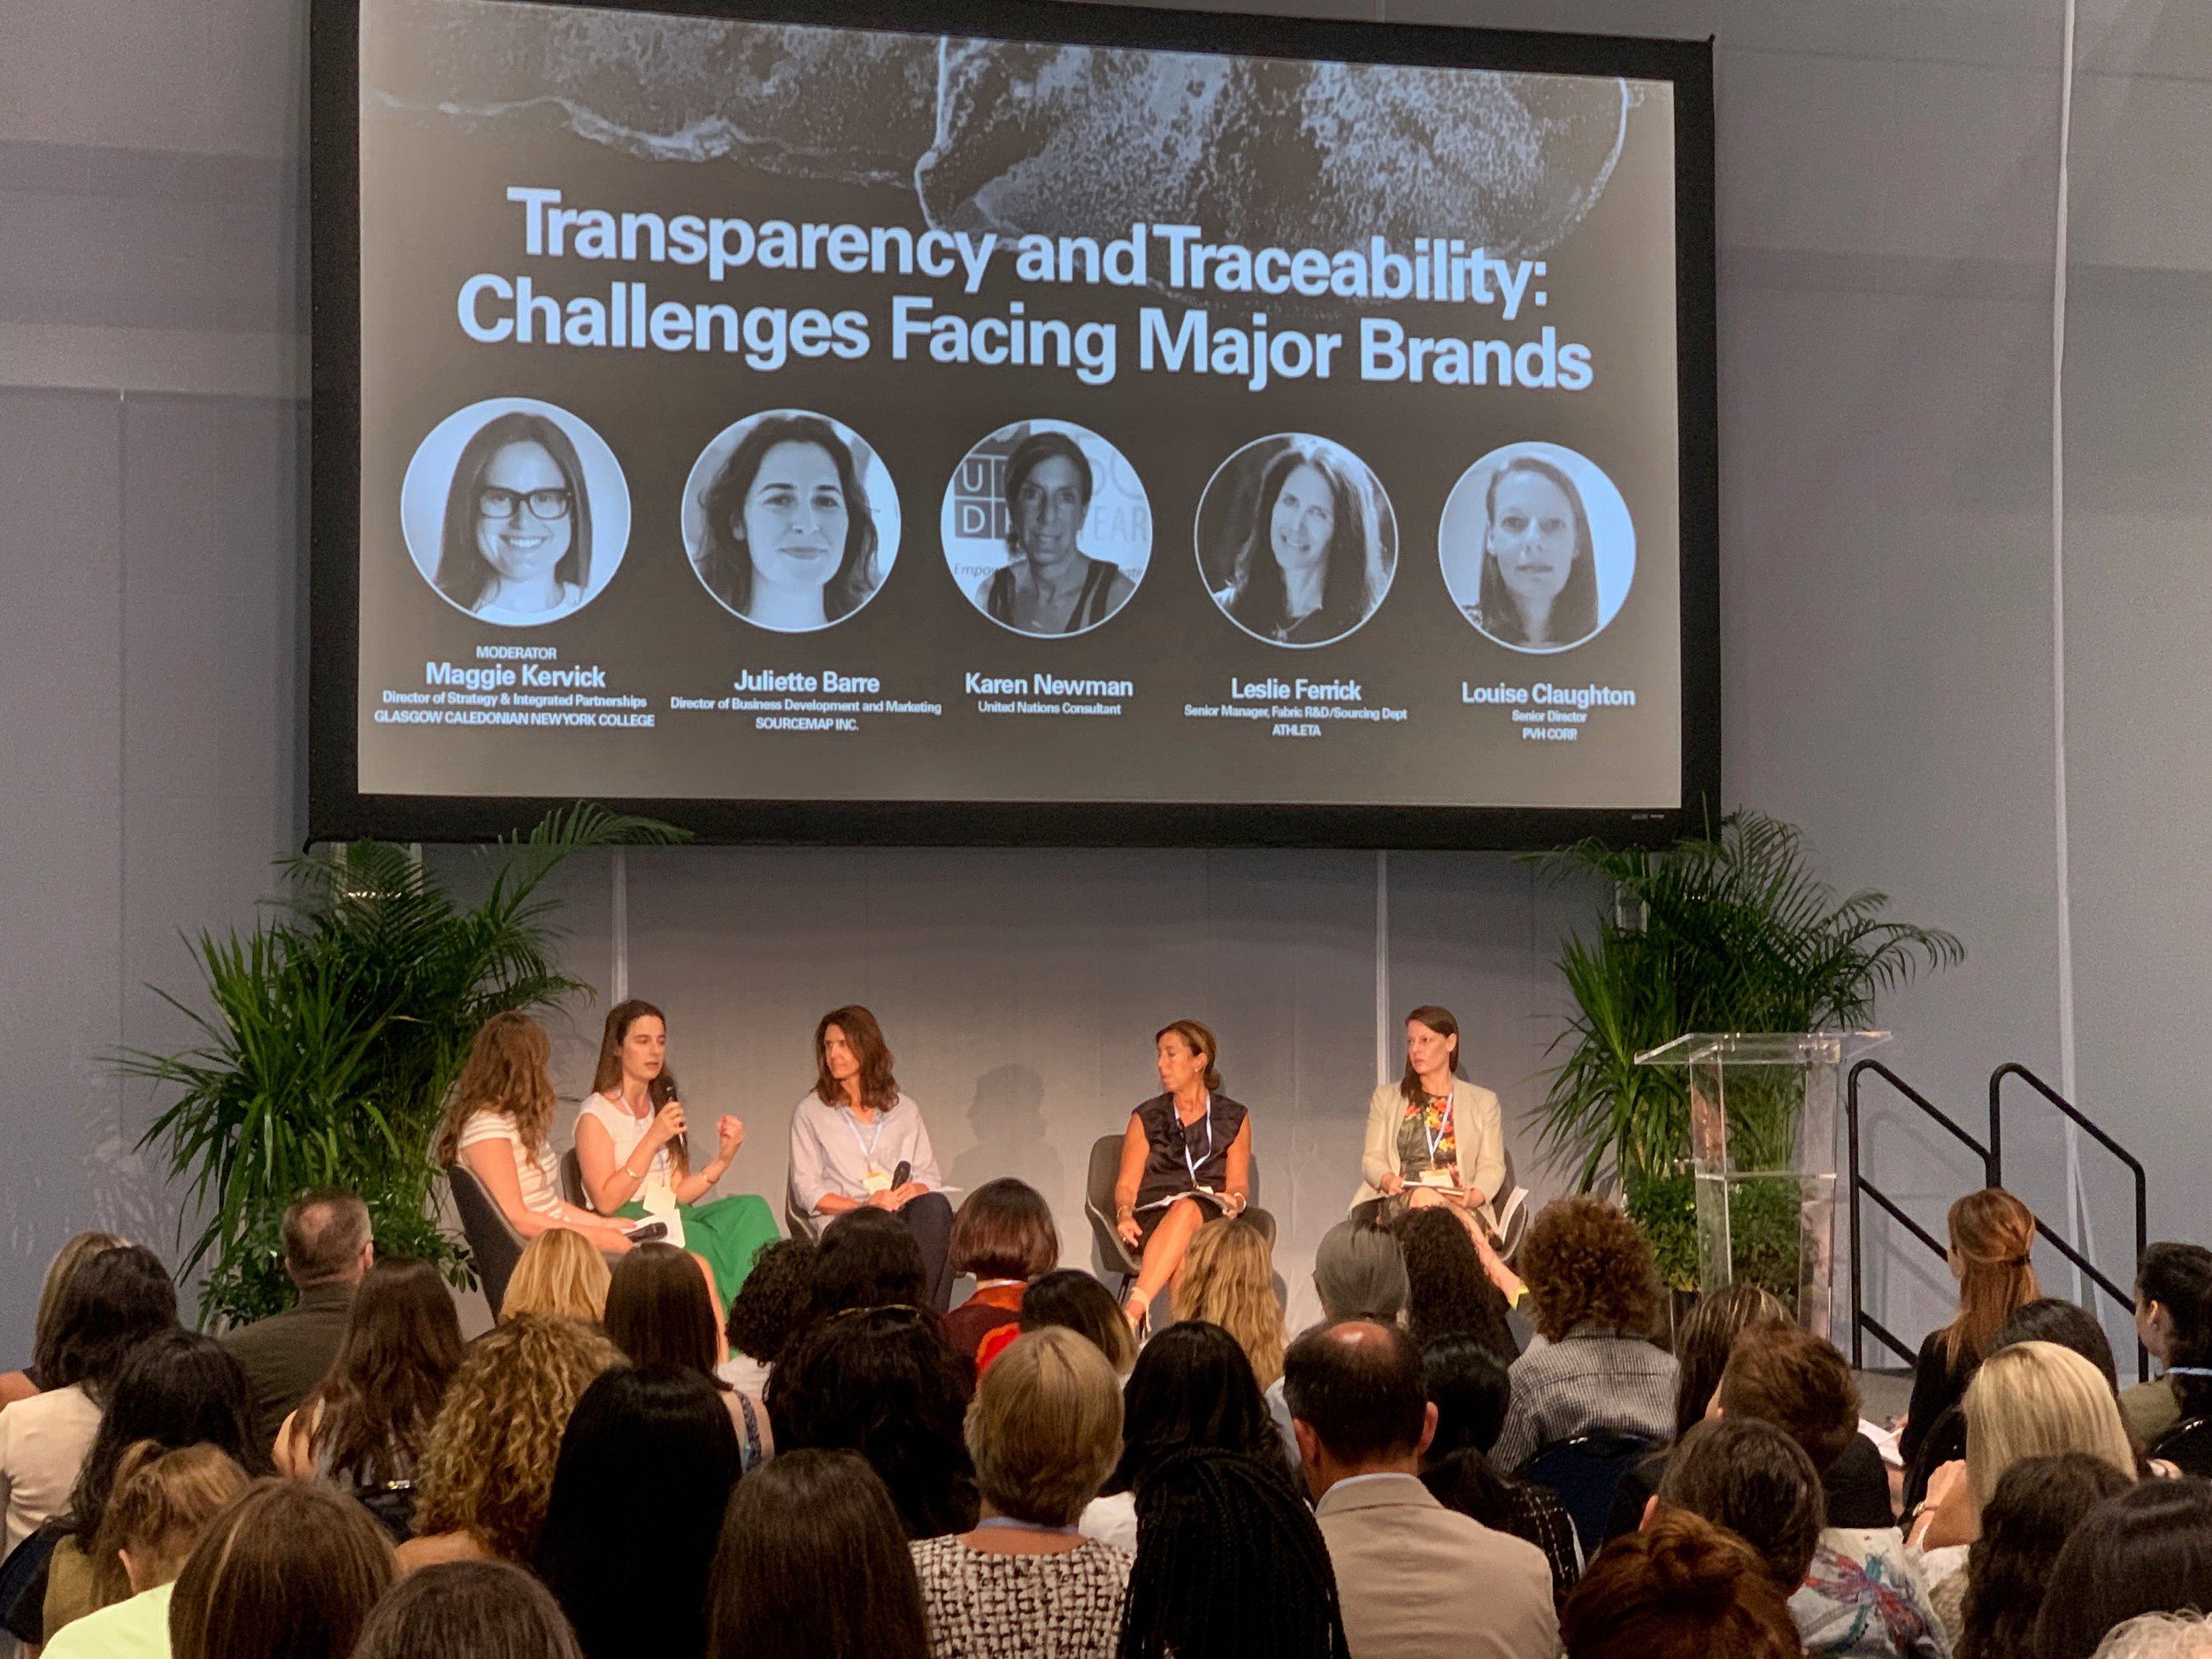 Panelists from left to right: Maggie Kervick (GCNYC Director of Strategy & Integrated Partnerships), Juliette Barre (Director of Business Development and Marketing, Sourcemap), Leslie Ferrick (Senior Manager of Fabric R&D/Sourcing Dept., Athleta), Karen Newman (United Nations Consultant), and Louise Claughton (Senior Director, PVH Corp.)